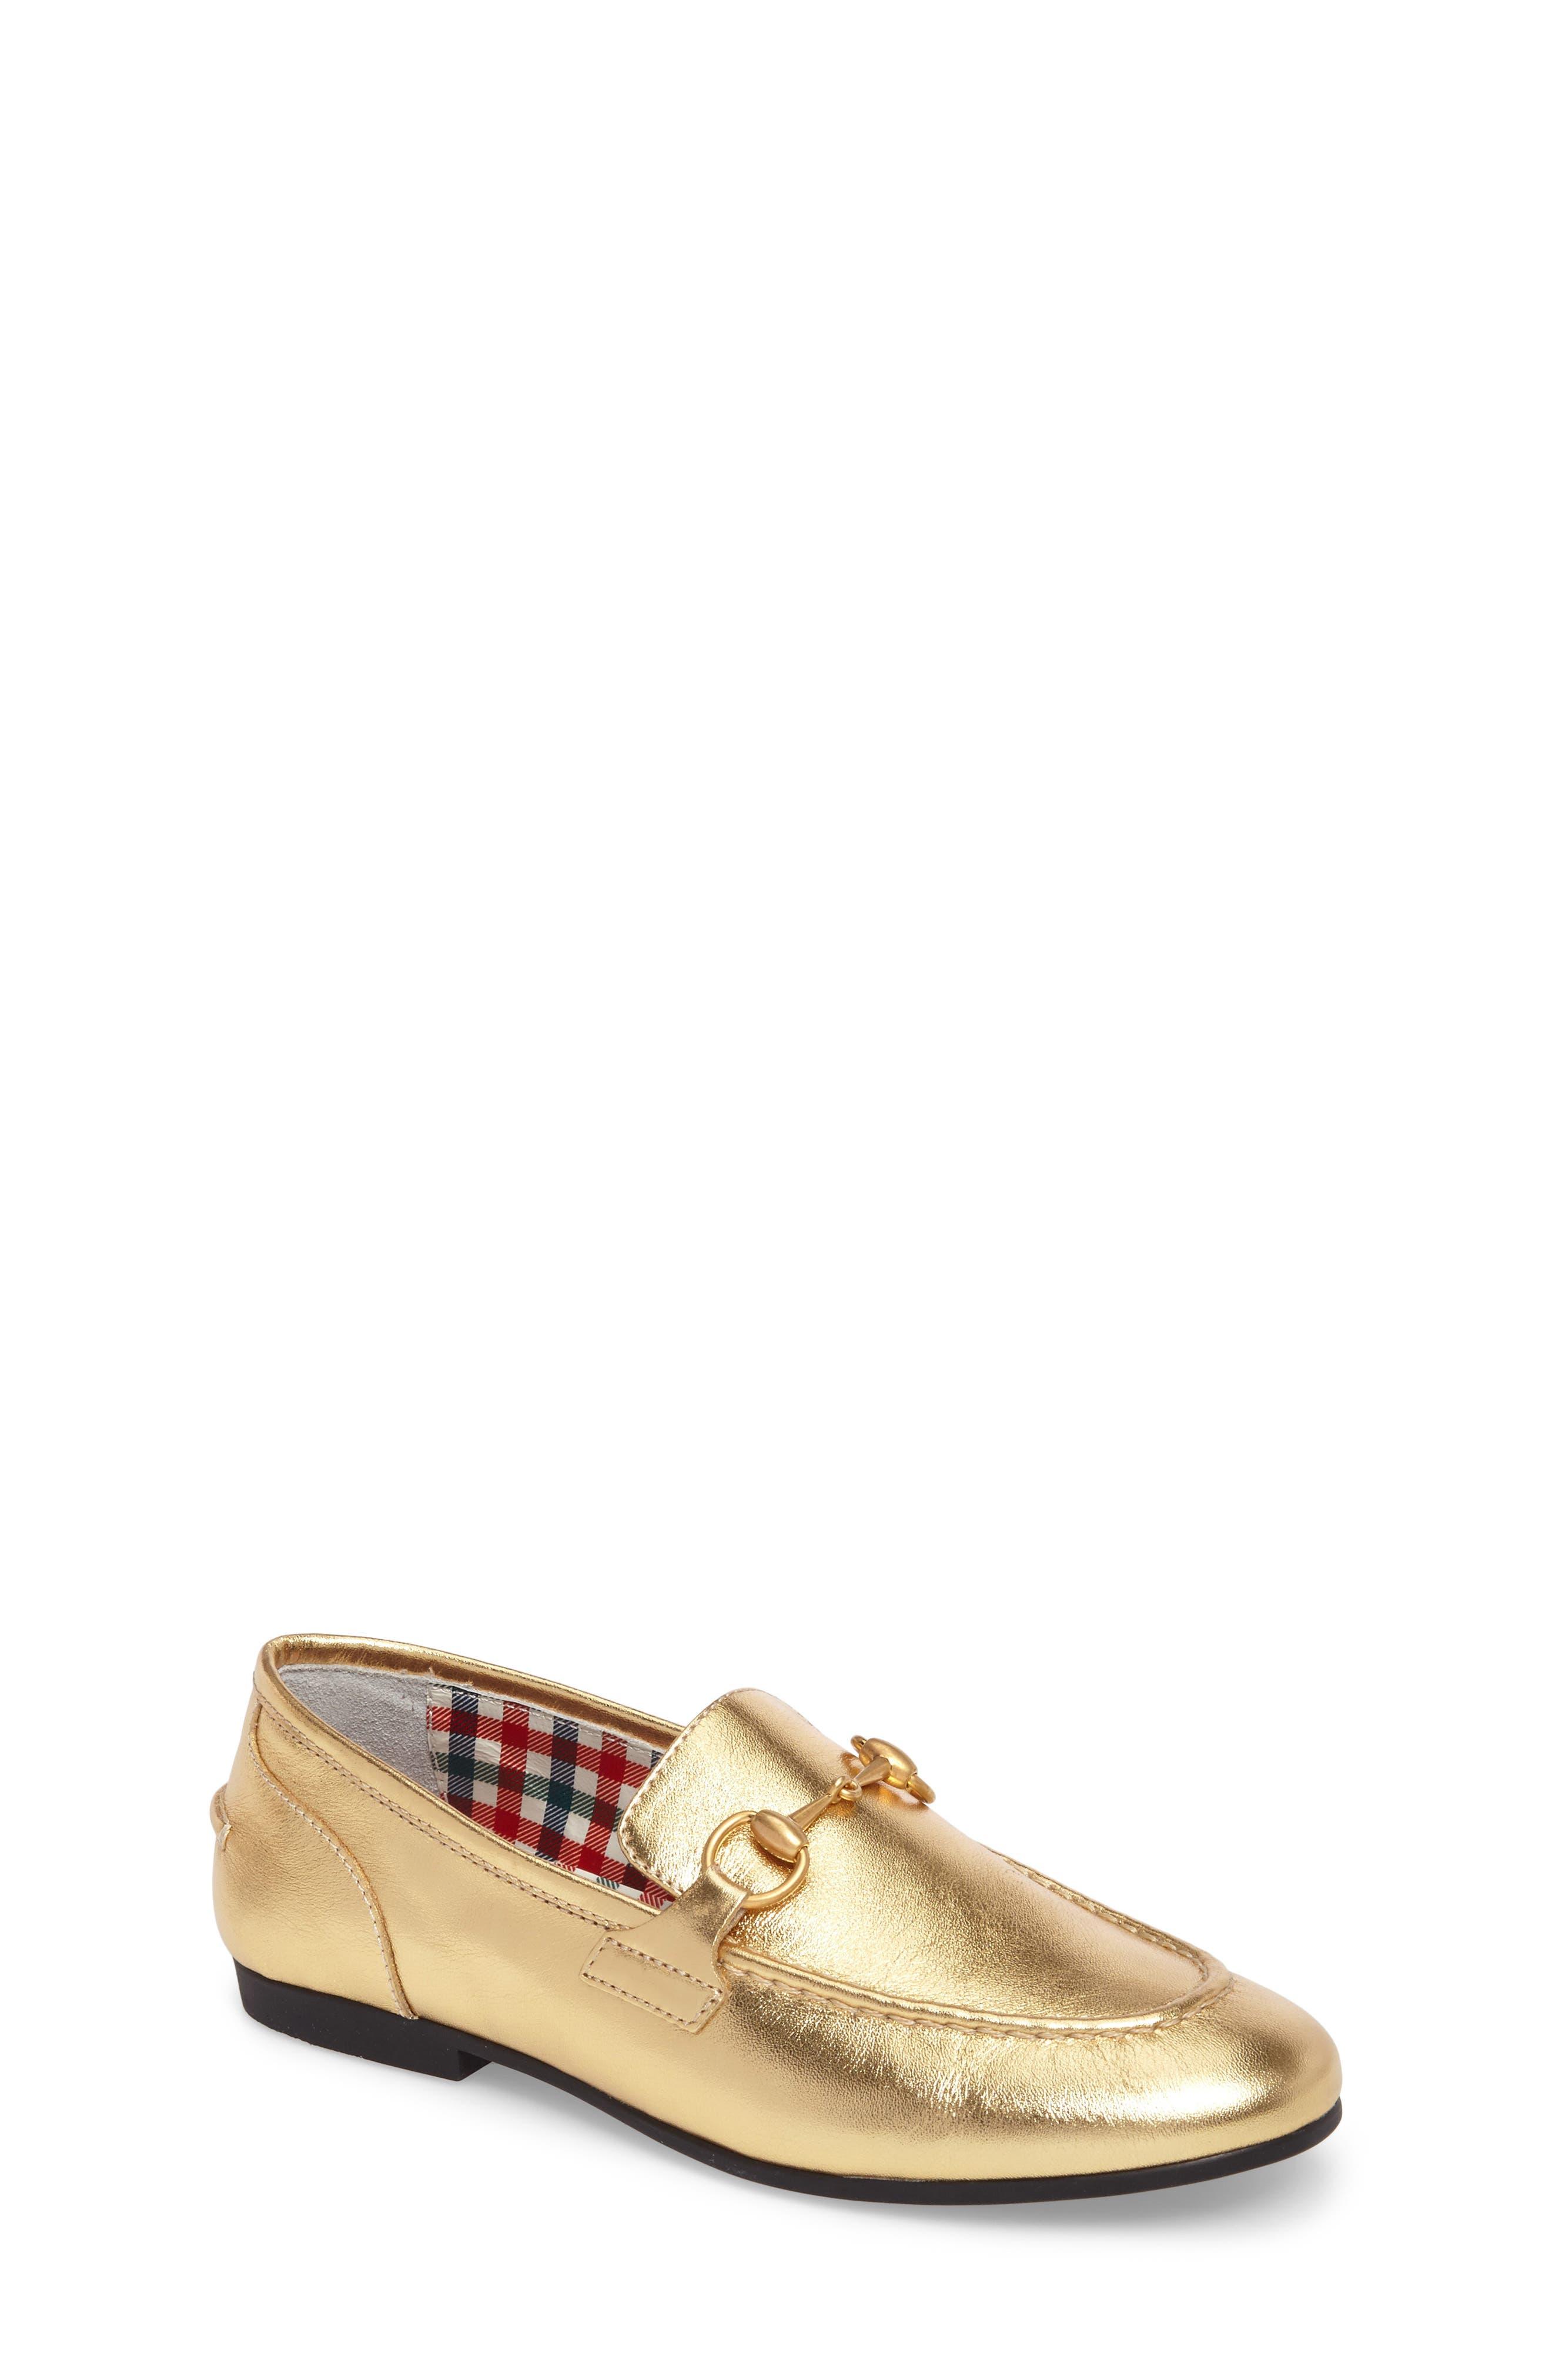 GUCCI Jordaan Bit Loafer, Main, color, METALLIC GOLD